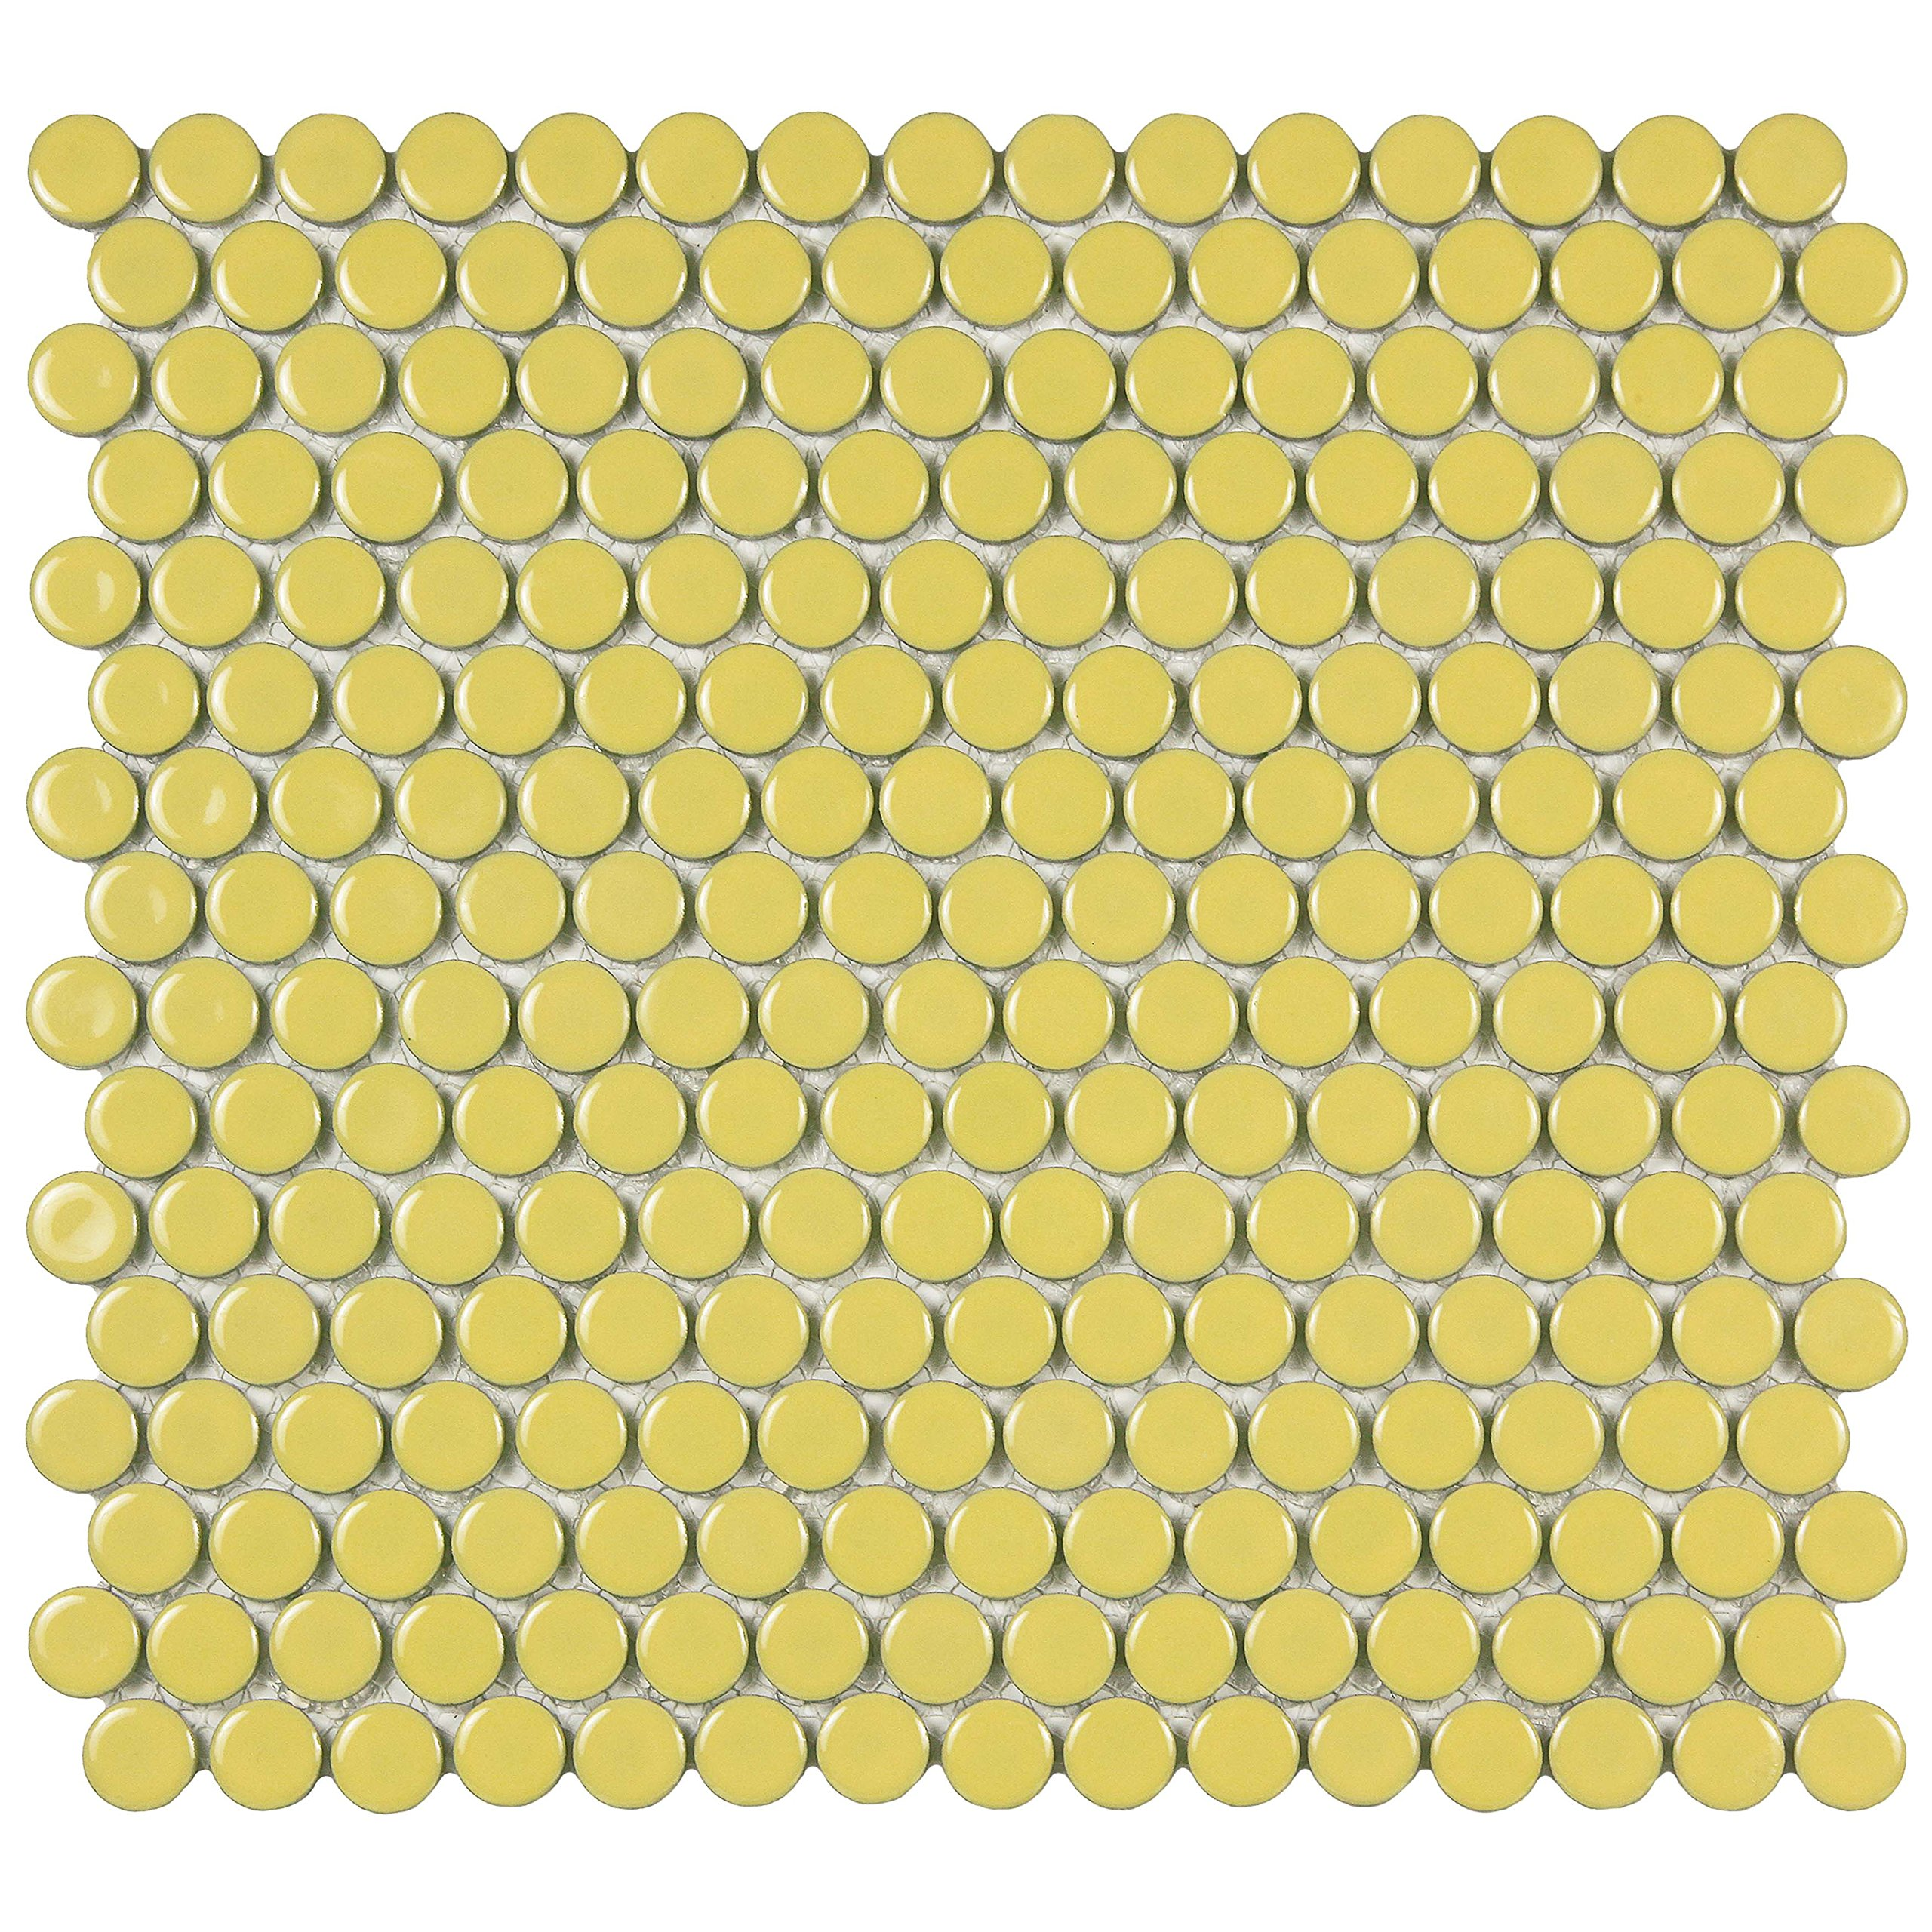 SomerTile FKOMPR06 Penny Porcelain Mosaic Floor and Wall Tile, 12'' x 12.625'', Vintage Yellow by SOMERTILE